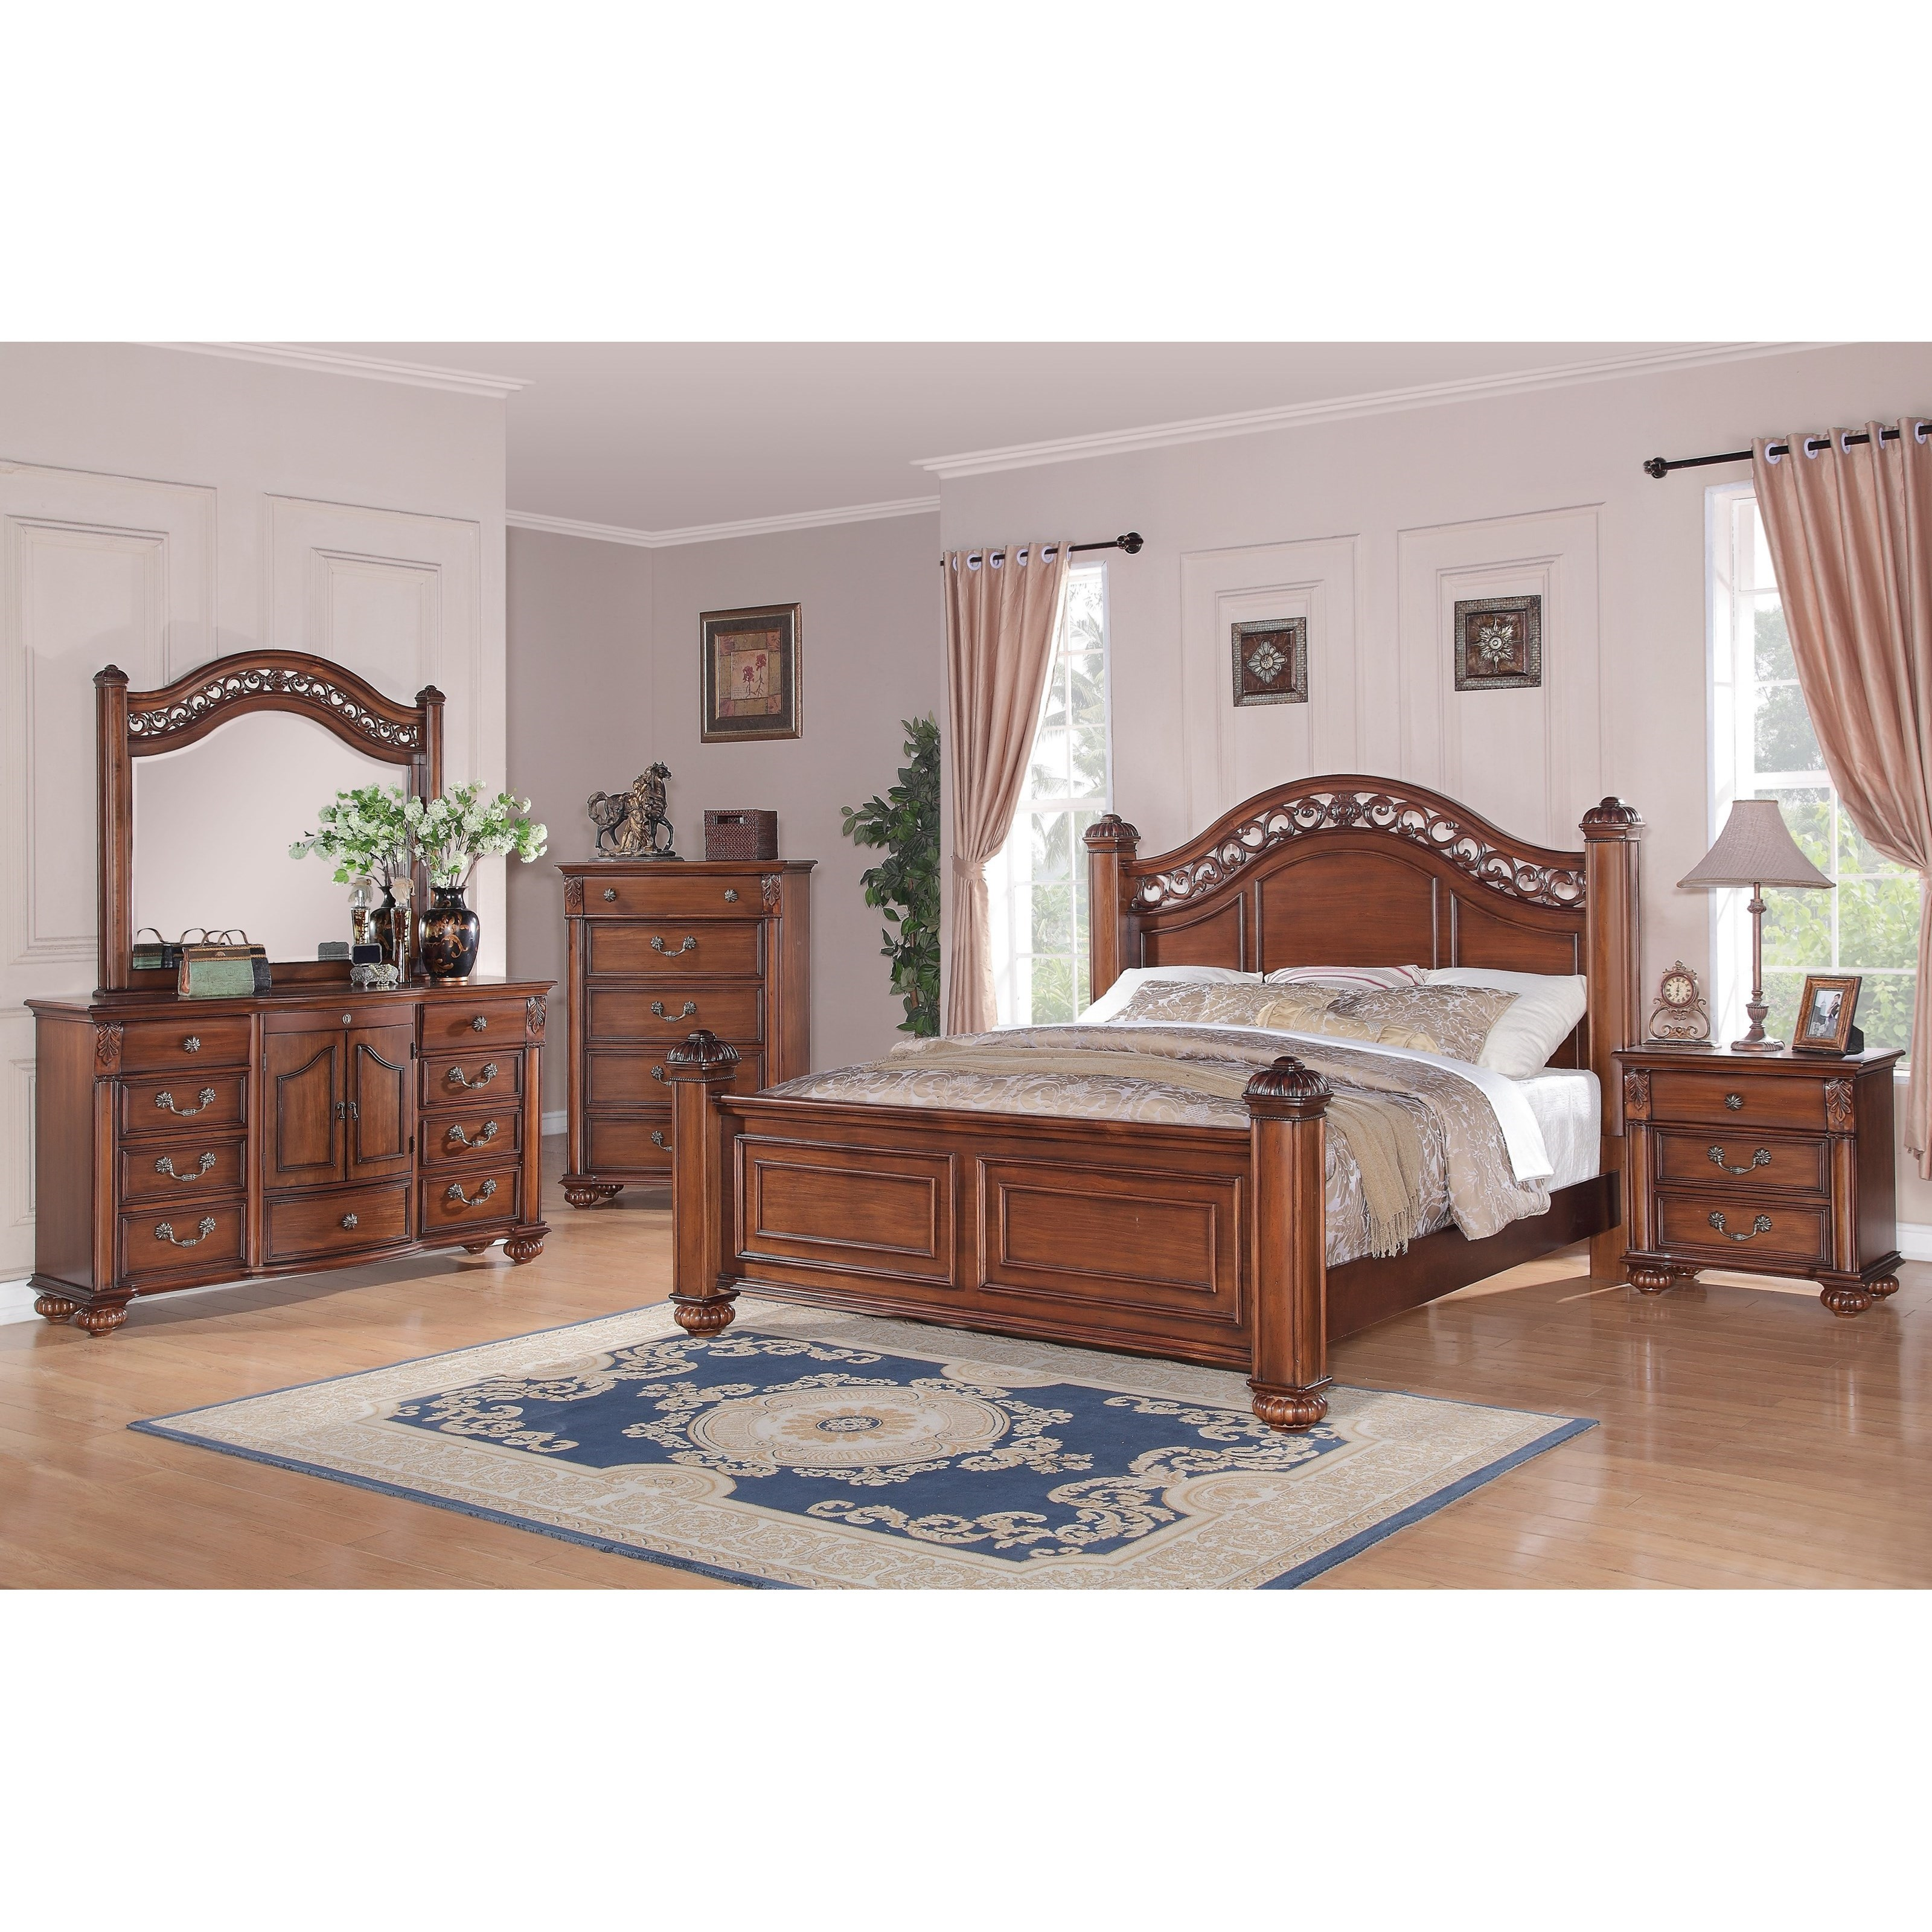 Elements International Barkley Square Traditional Queen Poster 5 Piece Bedroom Set Lindy S Furniture Company Bedroom Groups